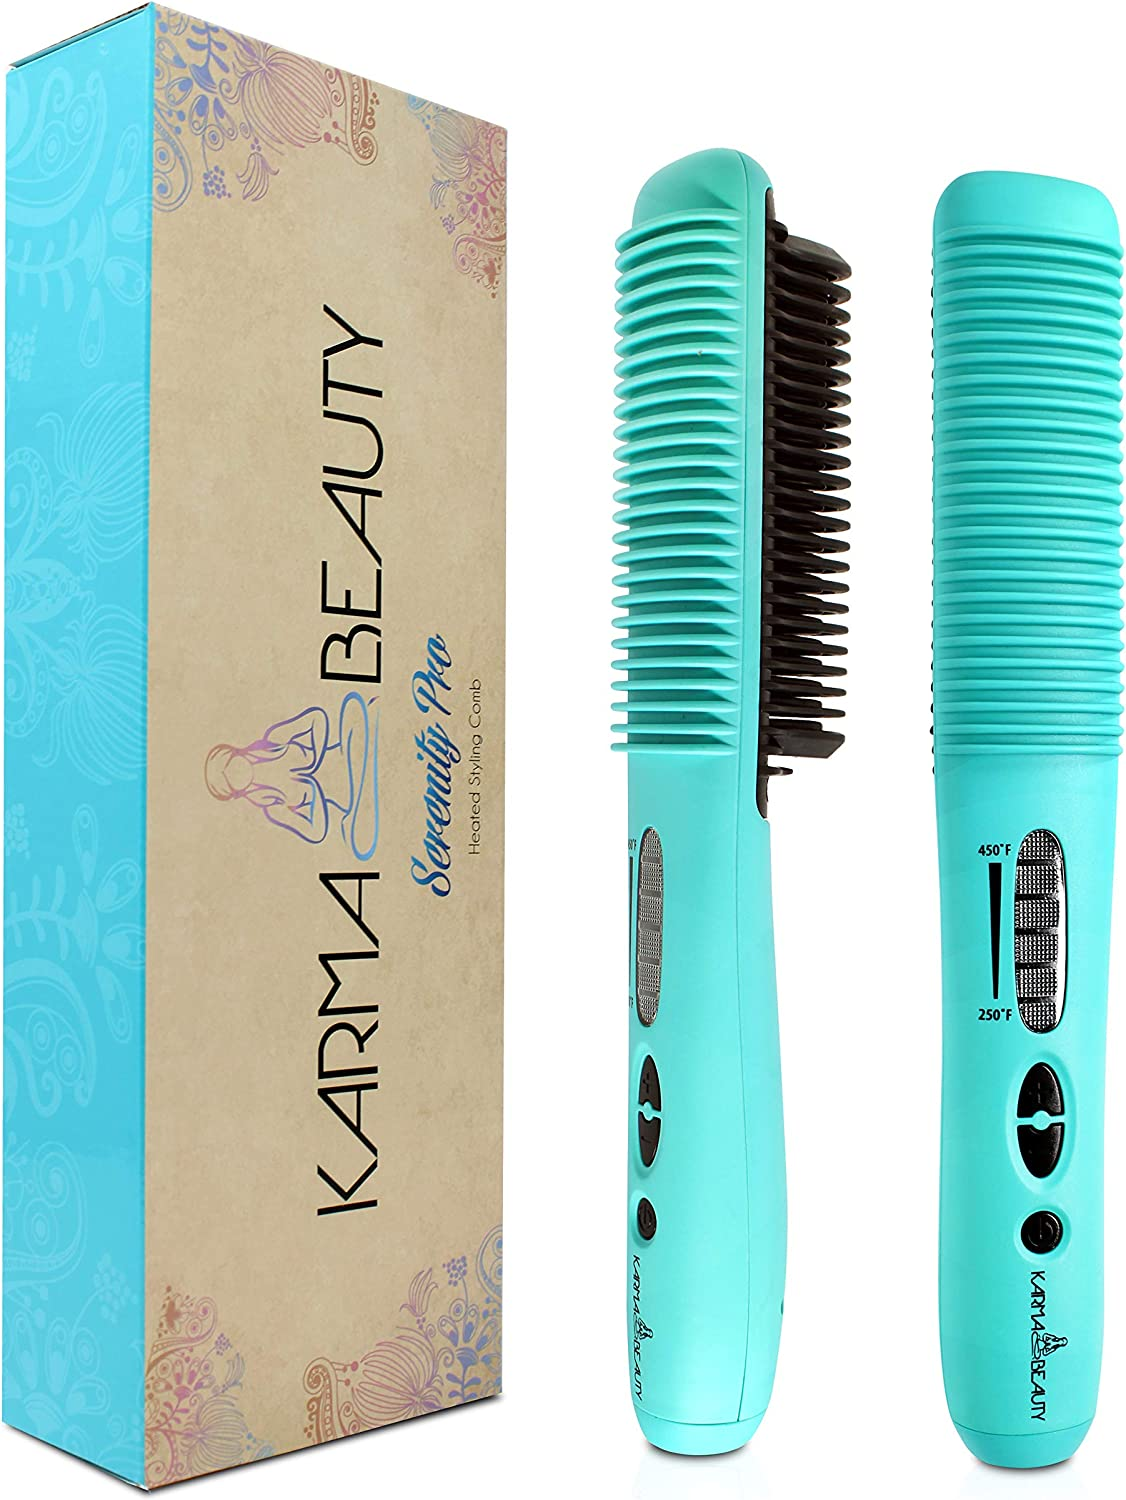 Straightening Comb Anti – Scald   Hot Comb PTC Ceramic Heating   Great for African American Hair & Wigs   Auto Shut Off   Create Straight & Curl   Karma Beauty  